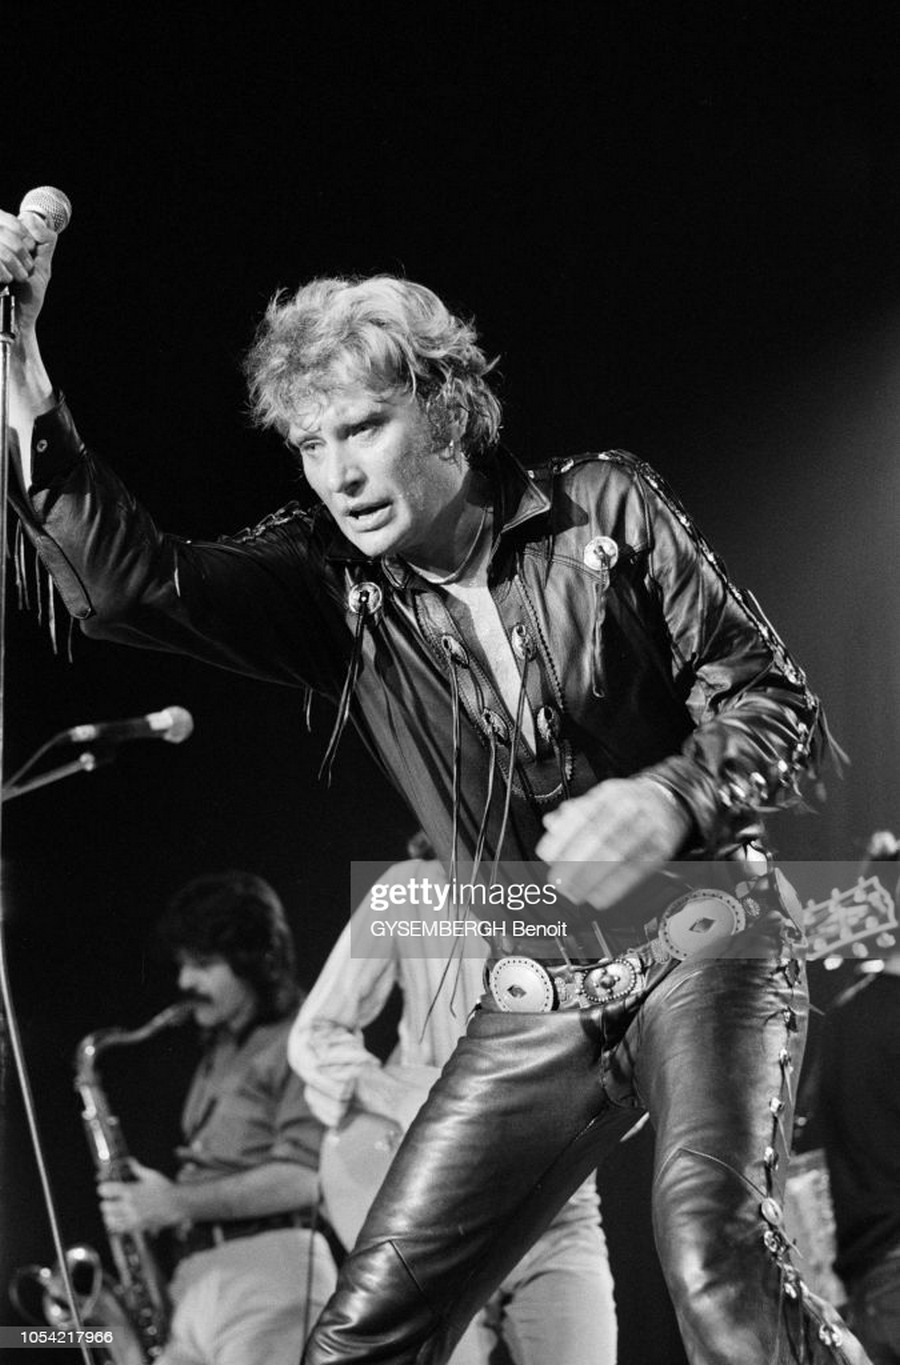 LES CONCERTS DE JOHNNY 'TOURNEE NIGHT RIDER BAND TOUR 1981' Getty878